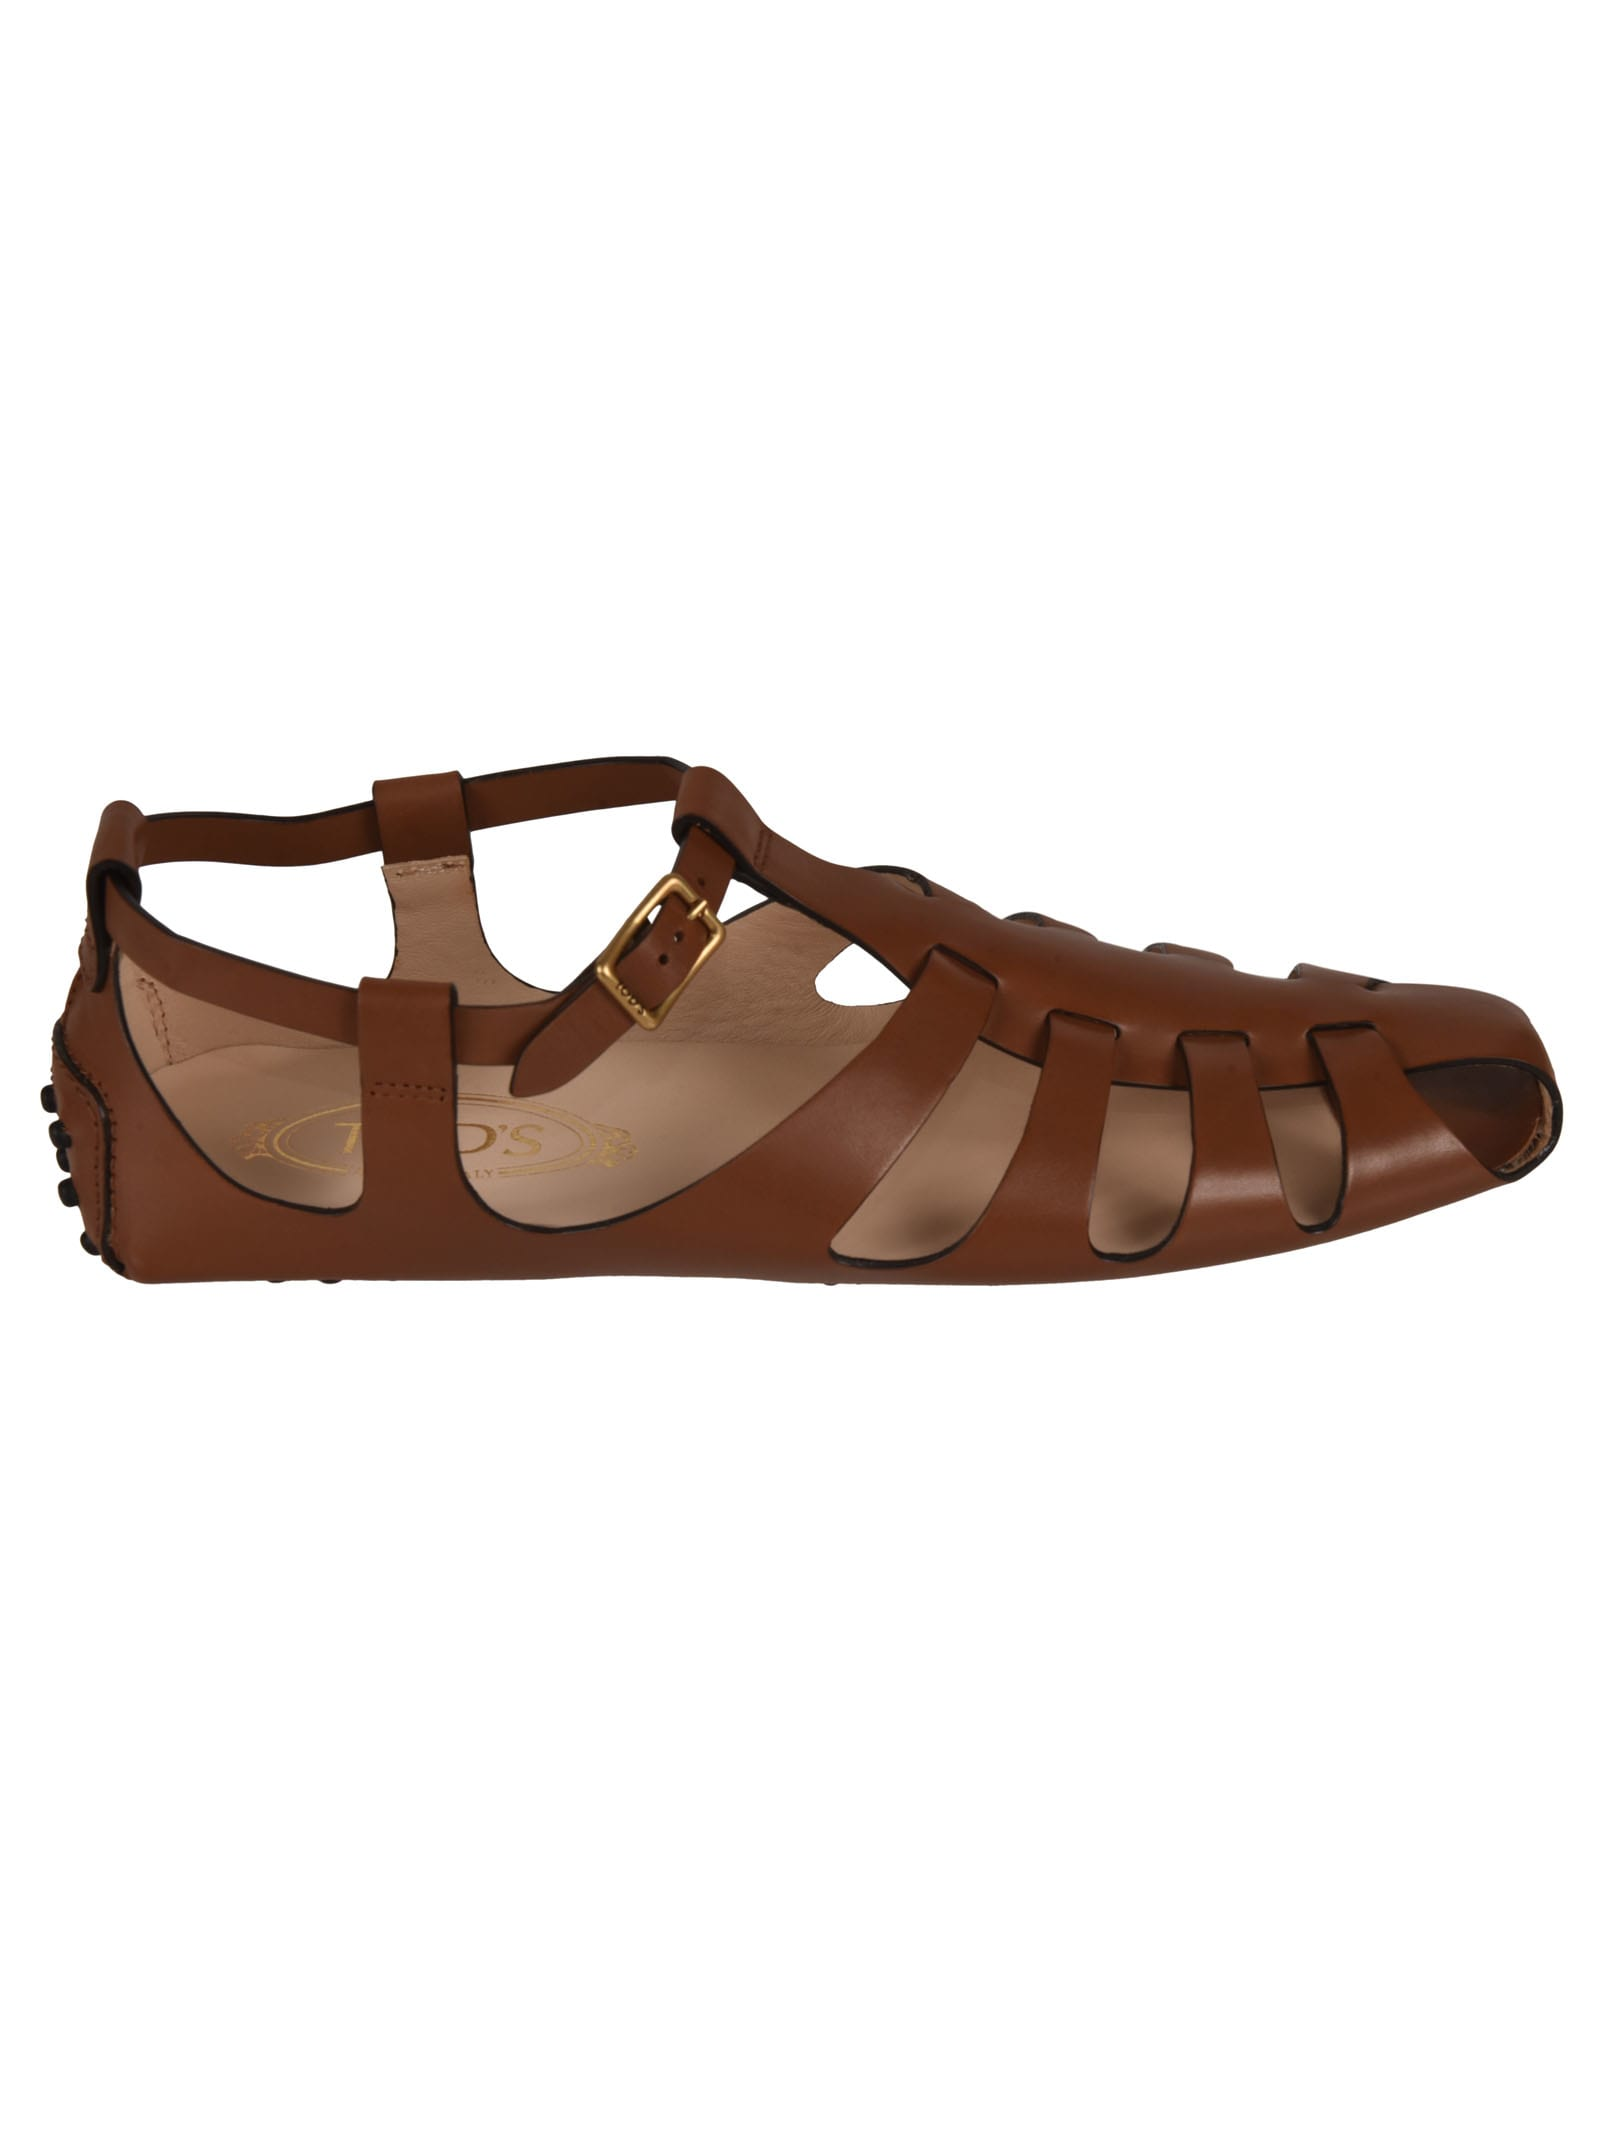 Buy Tods Heaven Cinturino Loafers online, shop Tods shoes with free shipping